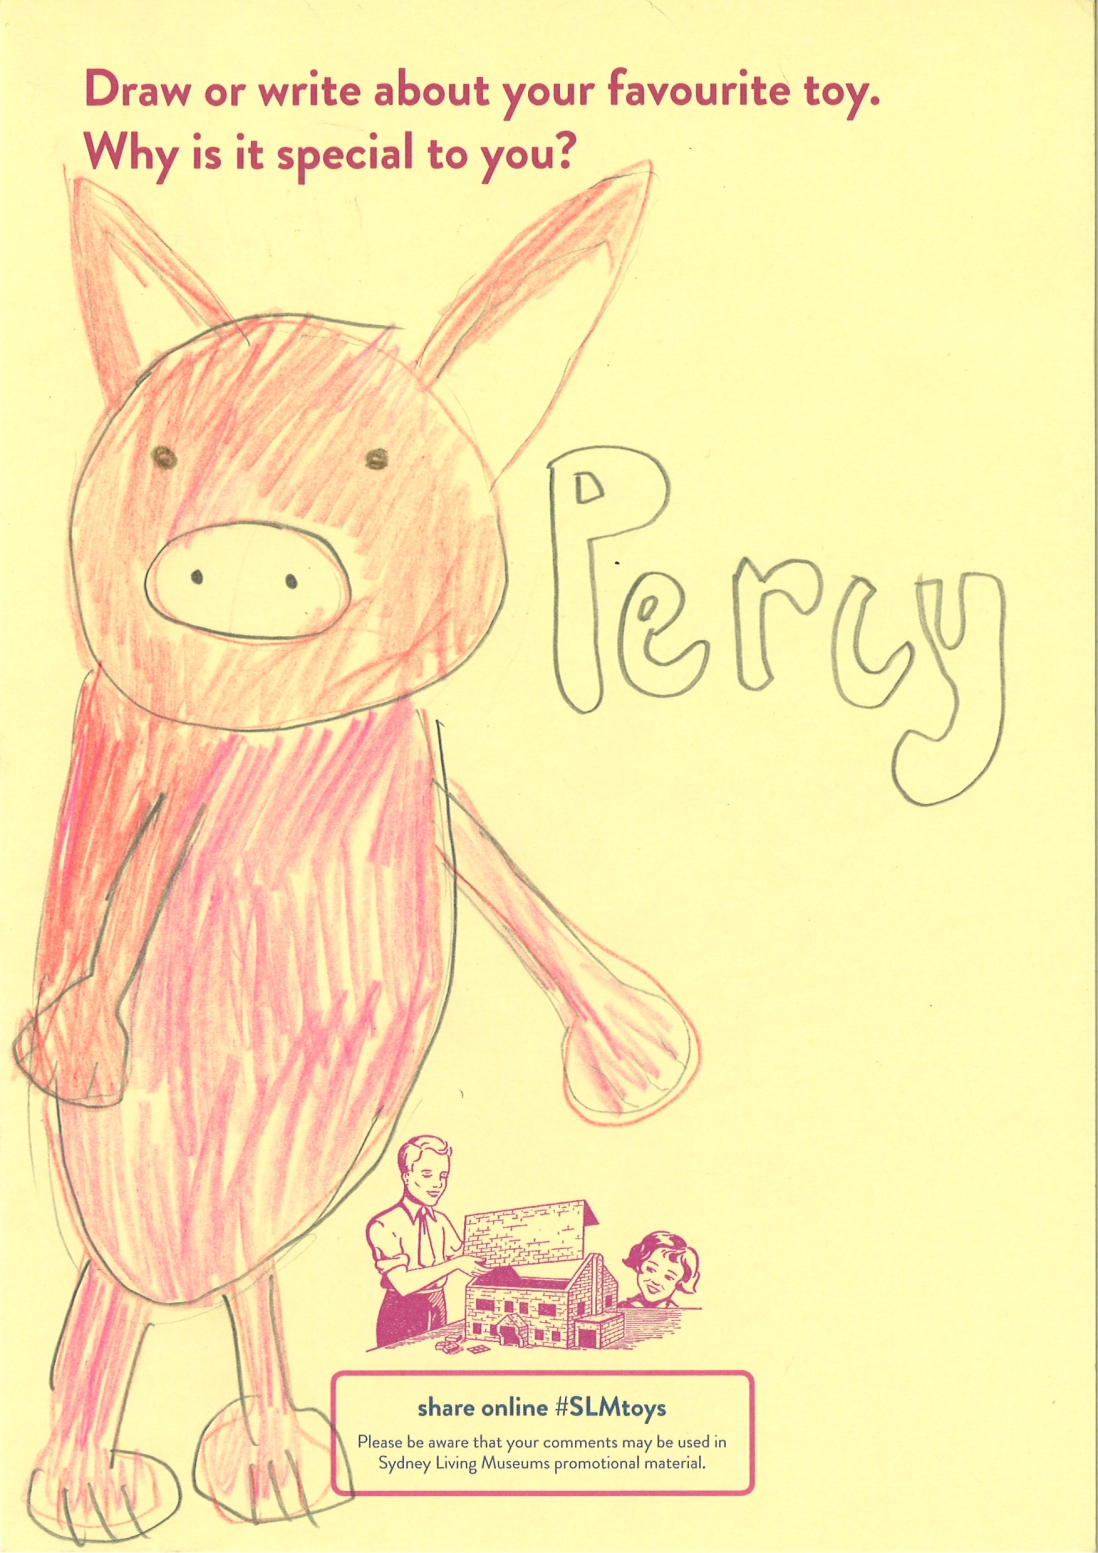 This is a drawing of a pig